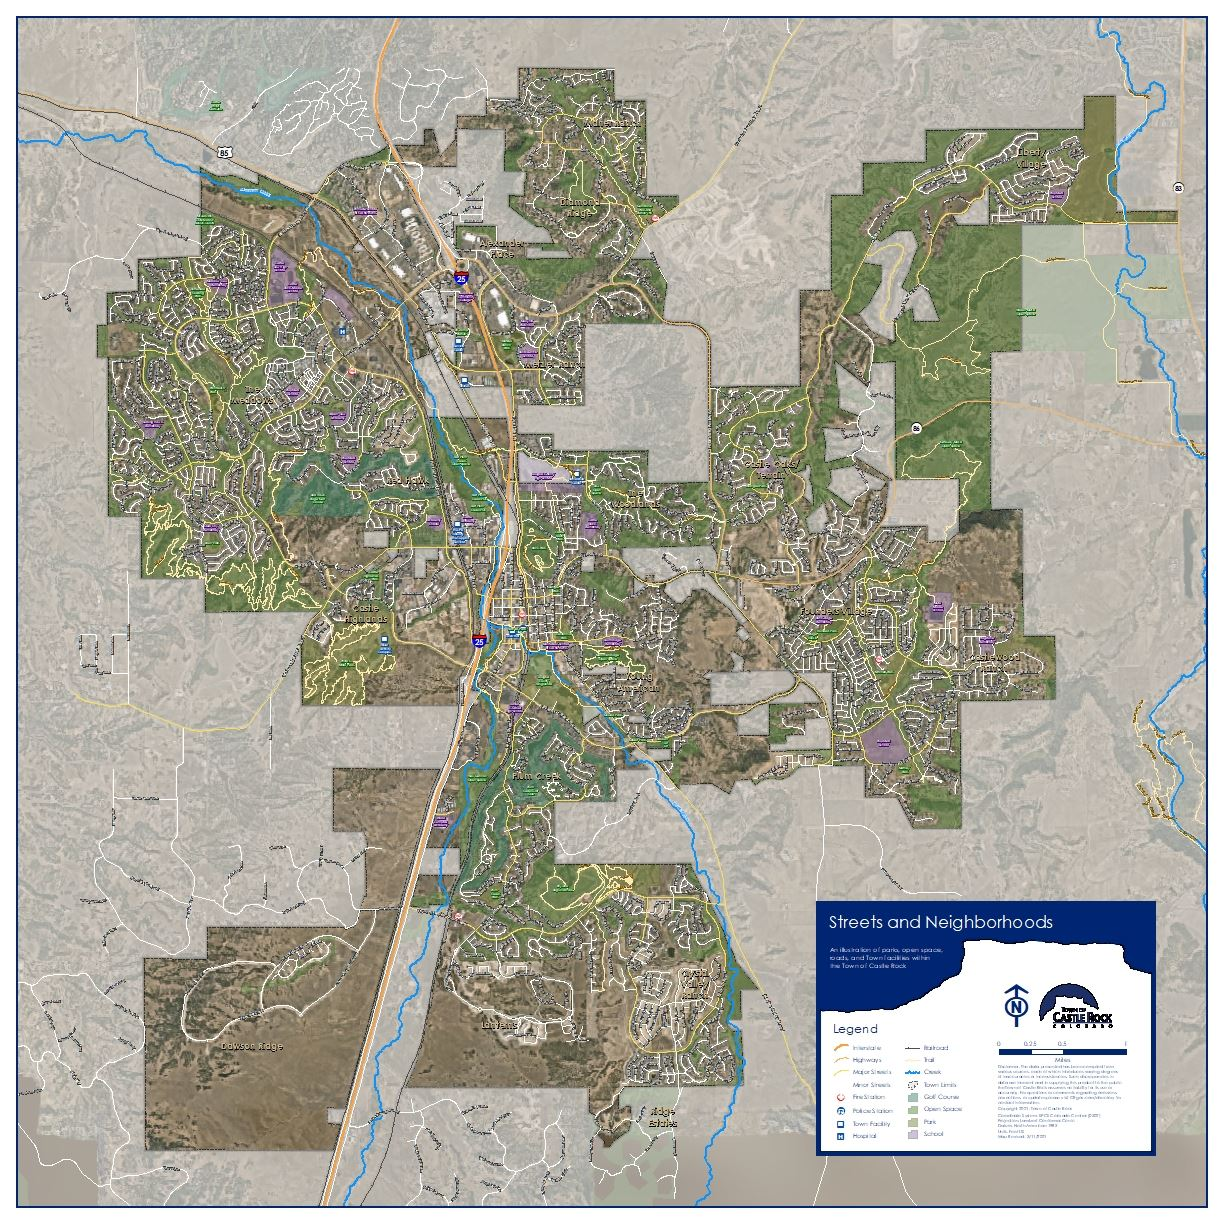 Map of Castle Rock neighborhood streets